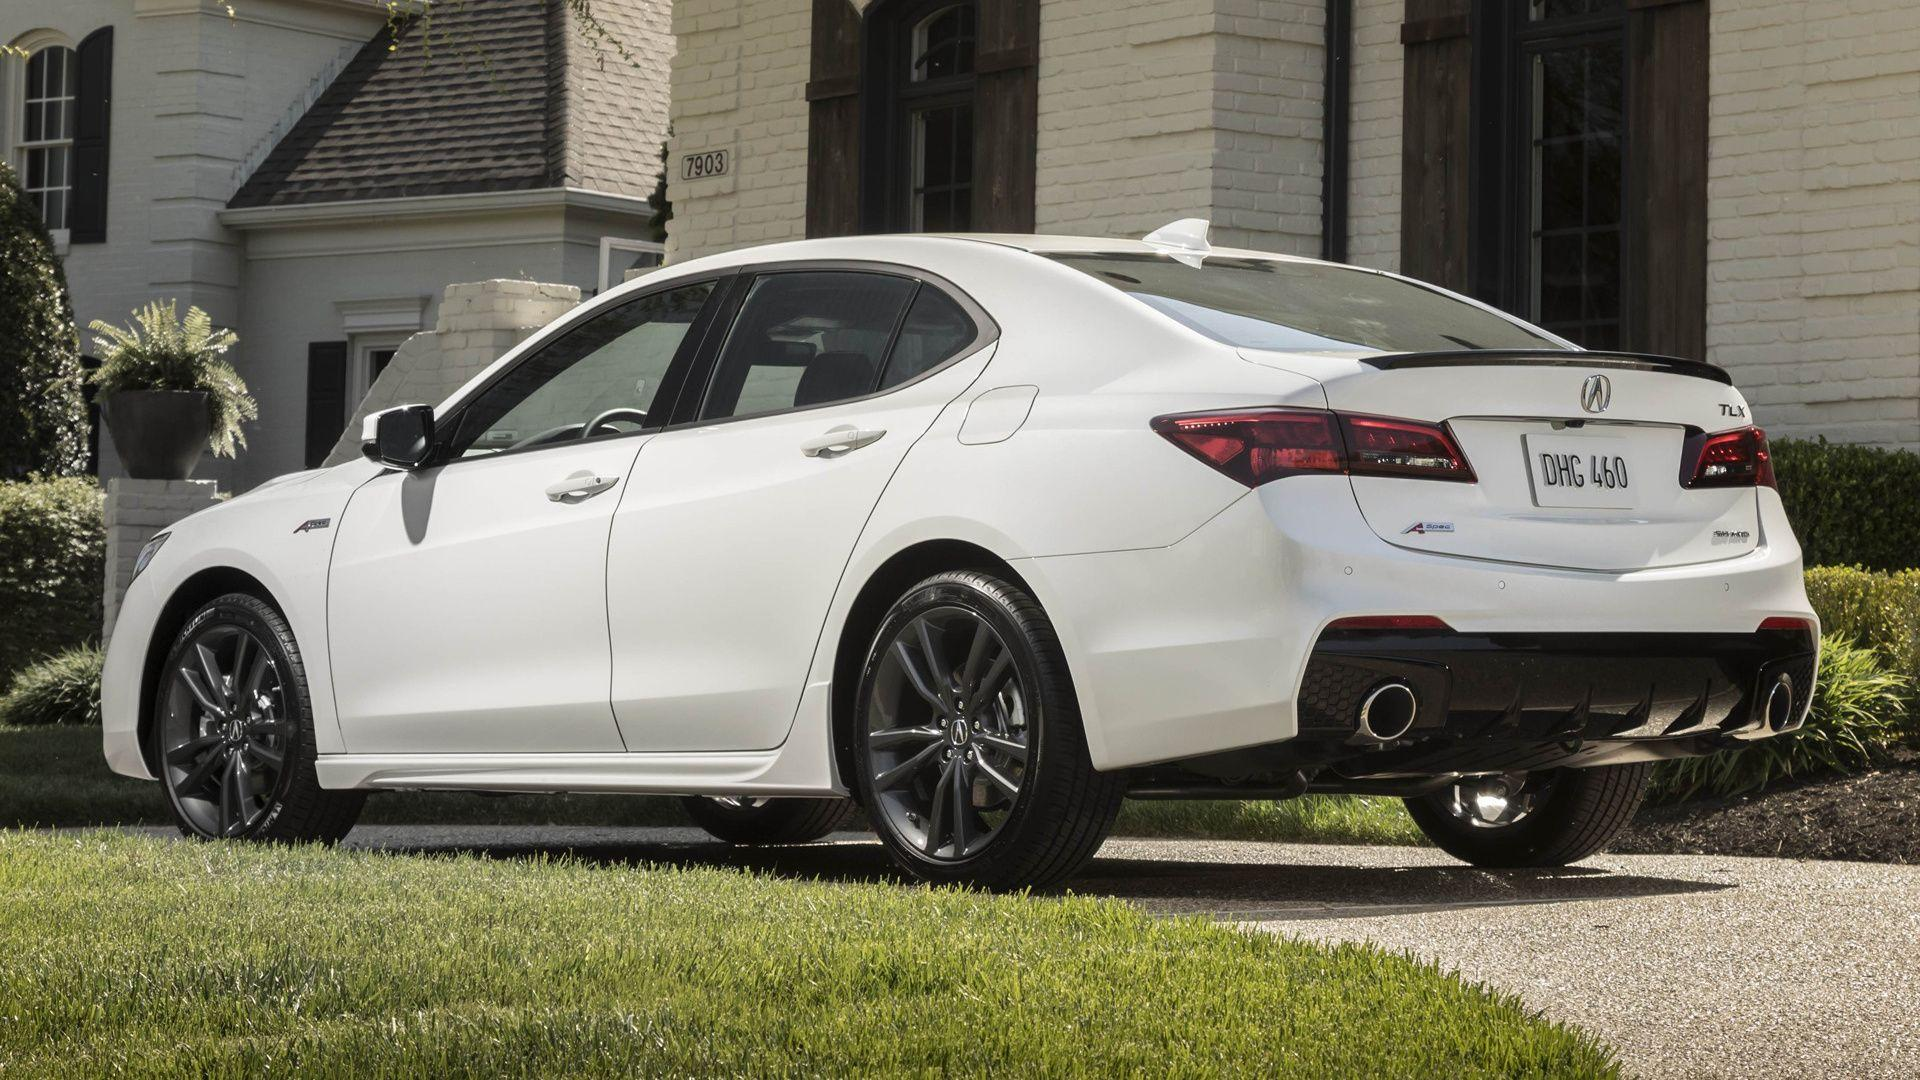 2018 Acura TLX A-Spec Full HD Wallpaper and Background Image ...